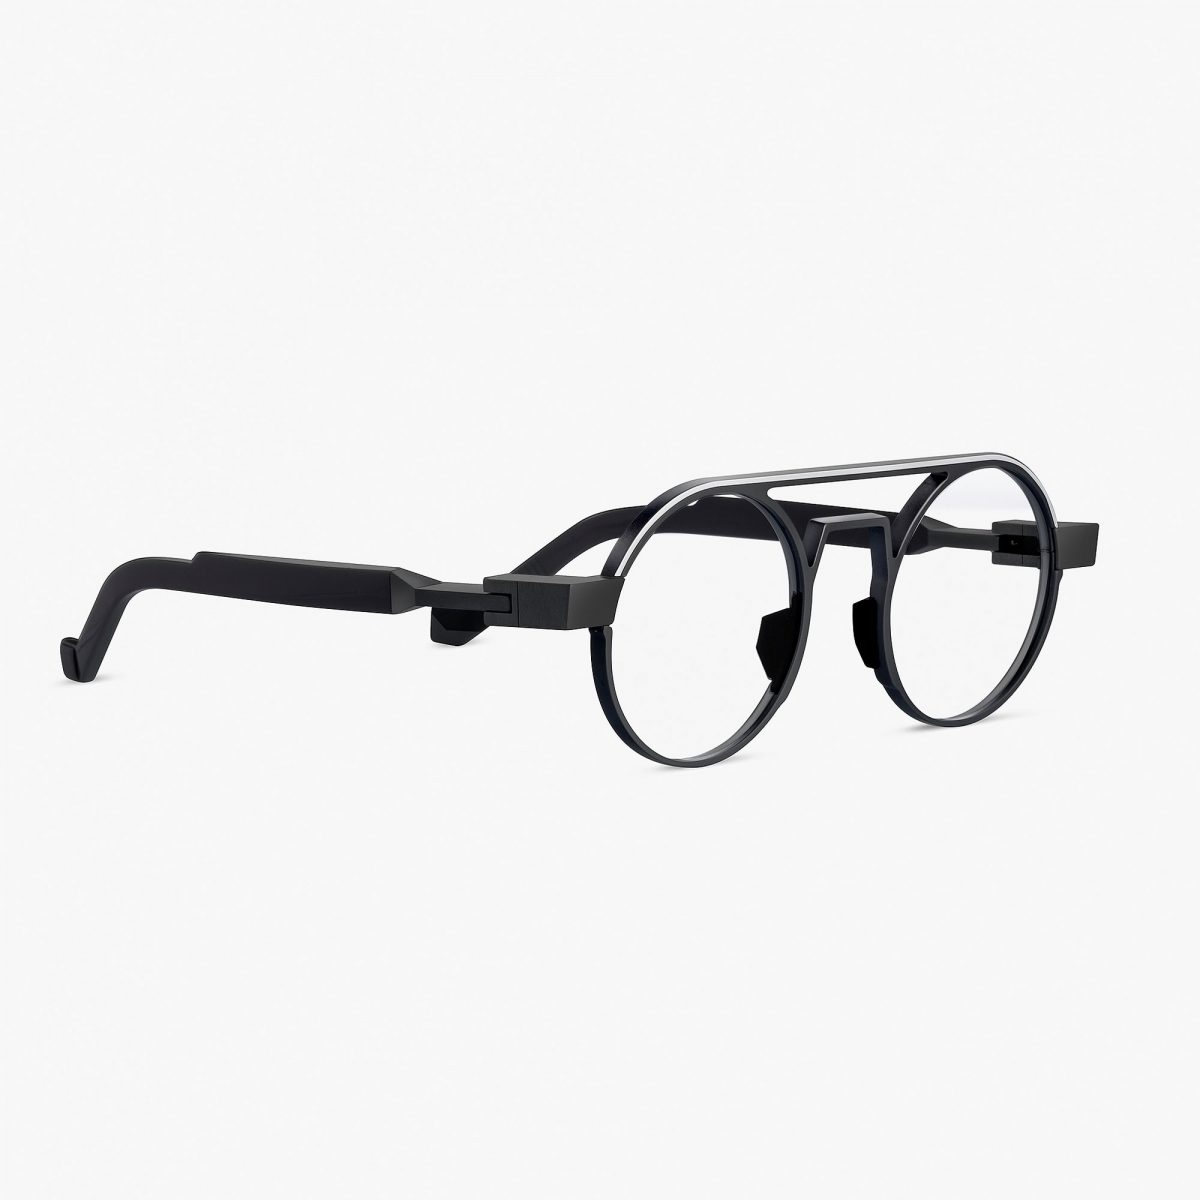 VAVA EYEWEAR ONLINE SHOP WL0022 BLACK SIDE